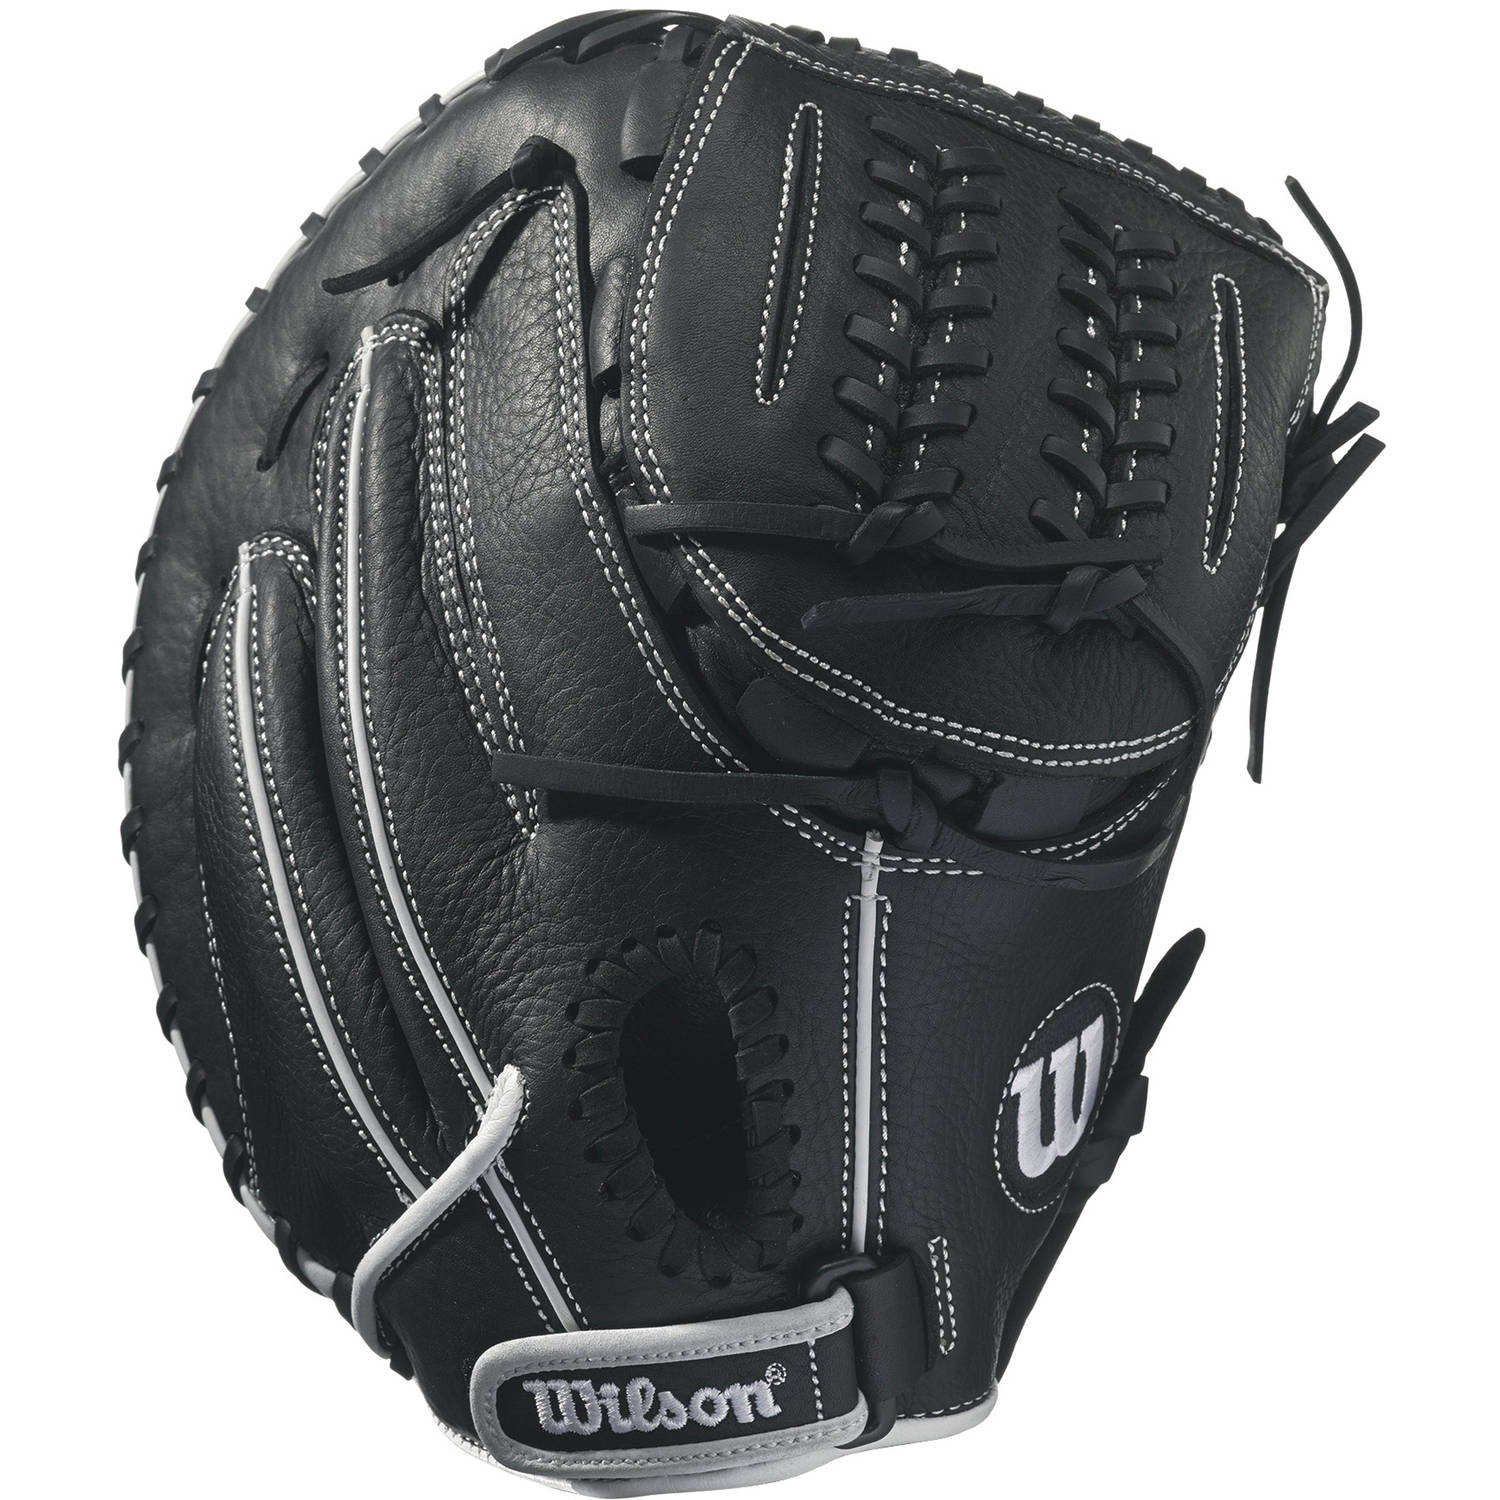 "Wilson Sporting Goods Onyx Catchers Mitt, 33"" by Wilson"